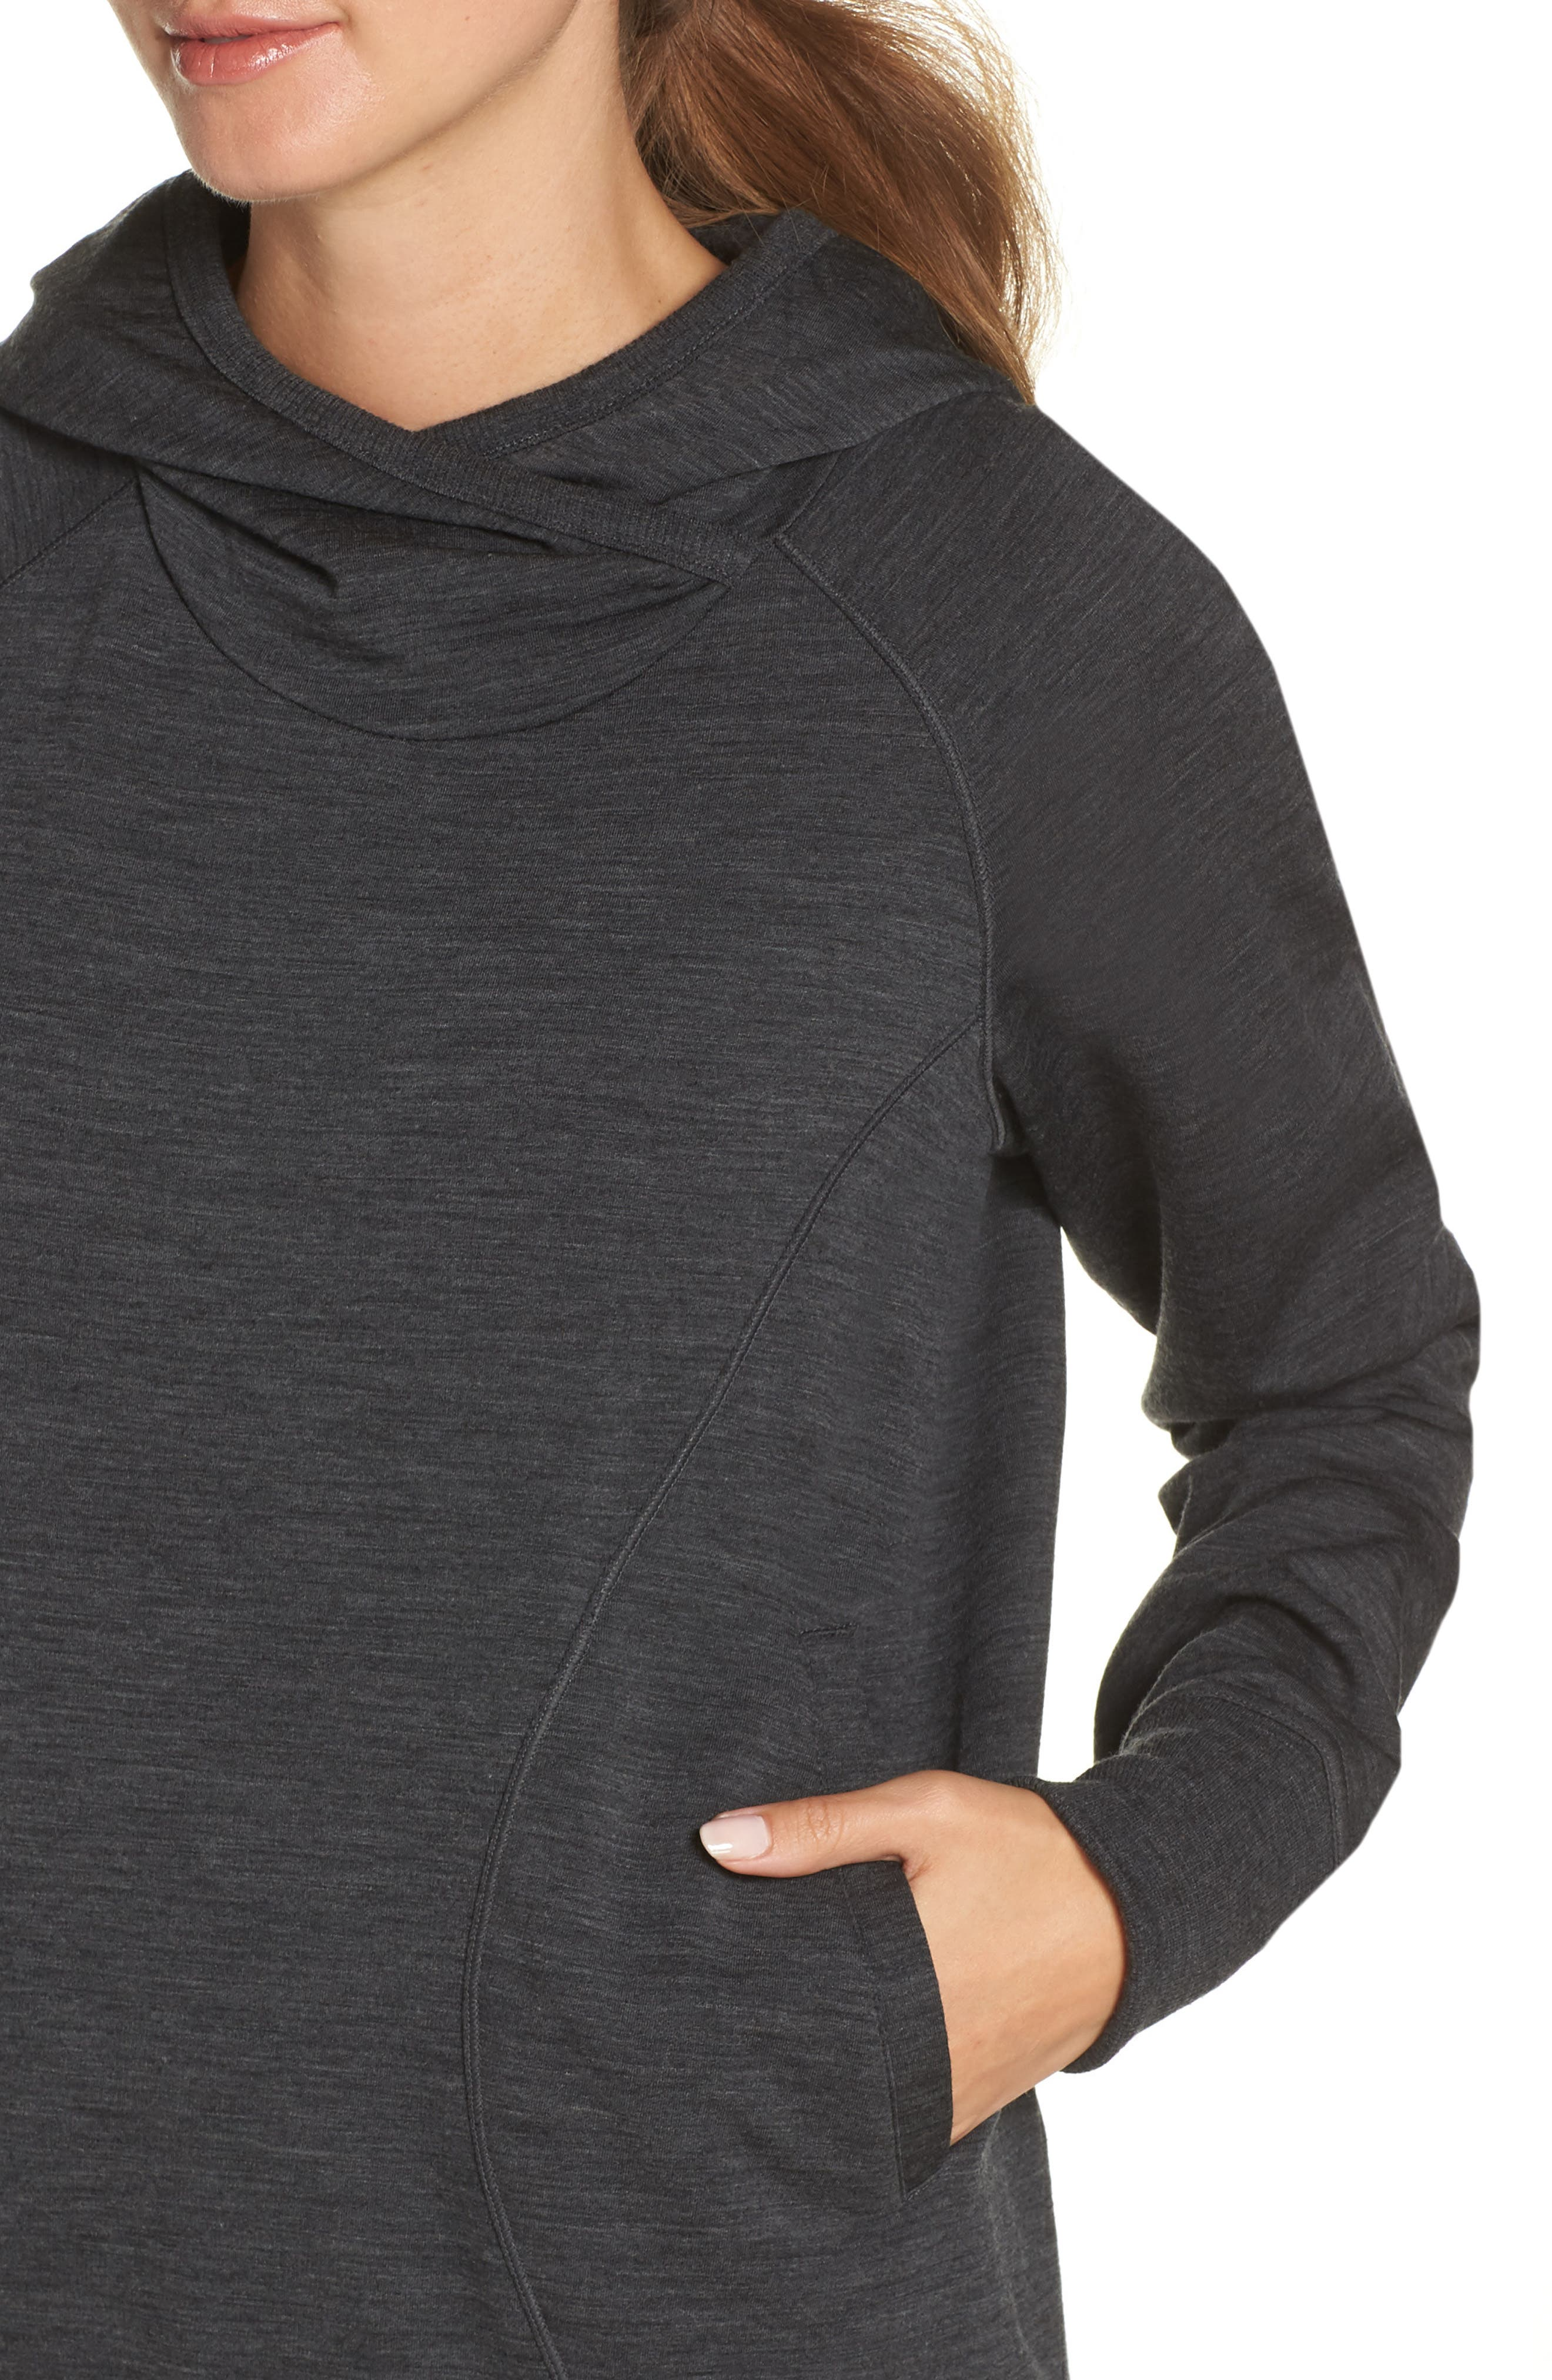 ICEBREAKER,                             Dia RealFLEECE<sup>®</sup> Pullover Hoodie,                             Alternate thumbnail 5, color,                             JET HEATHER